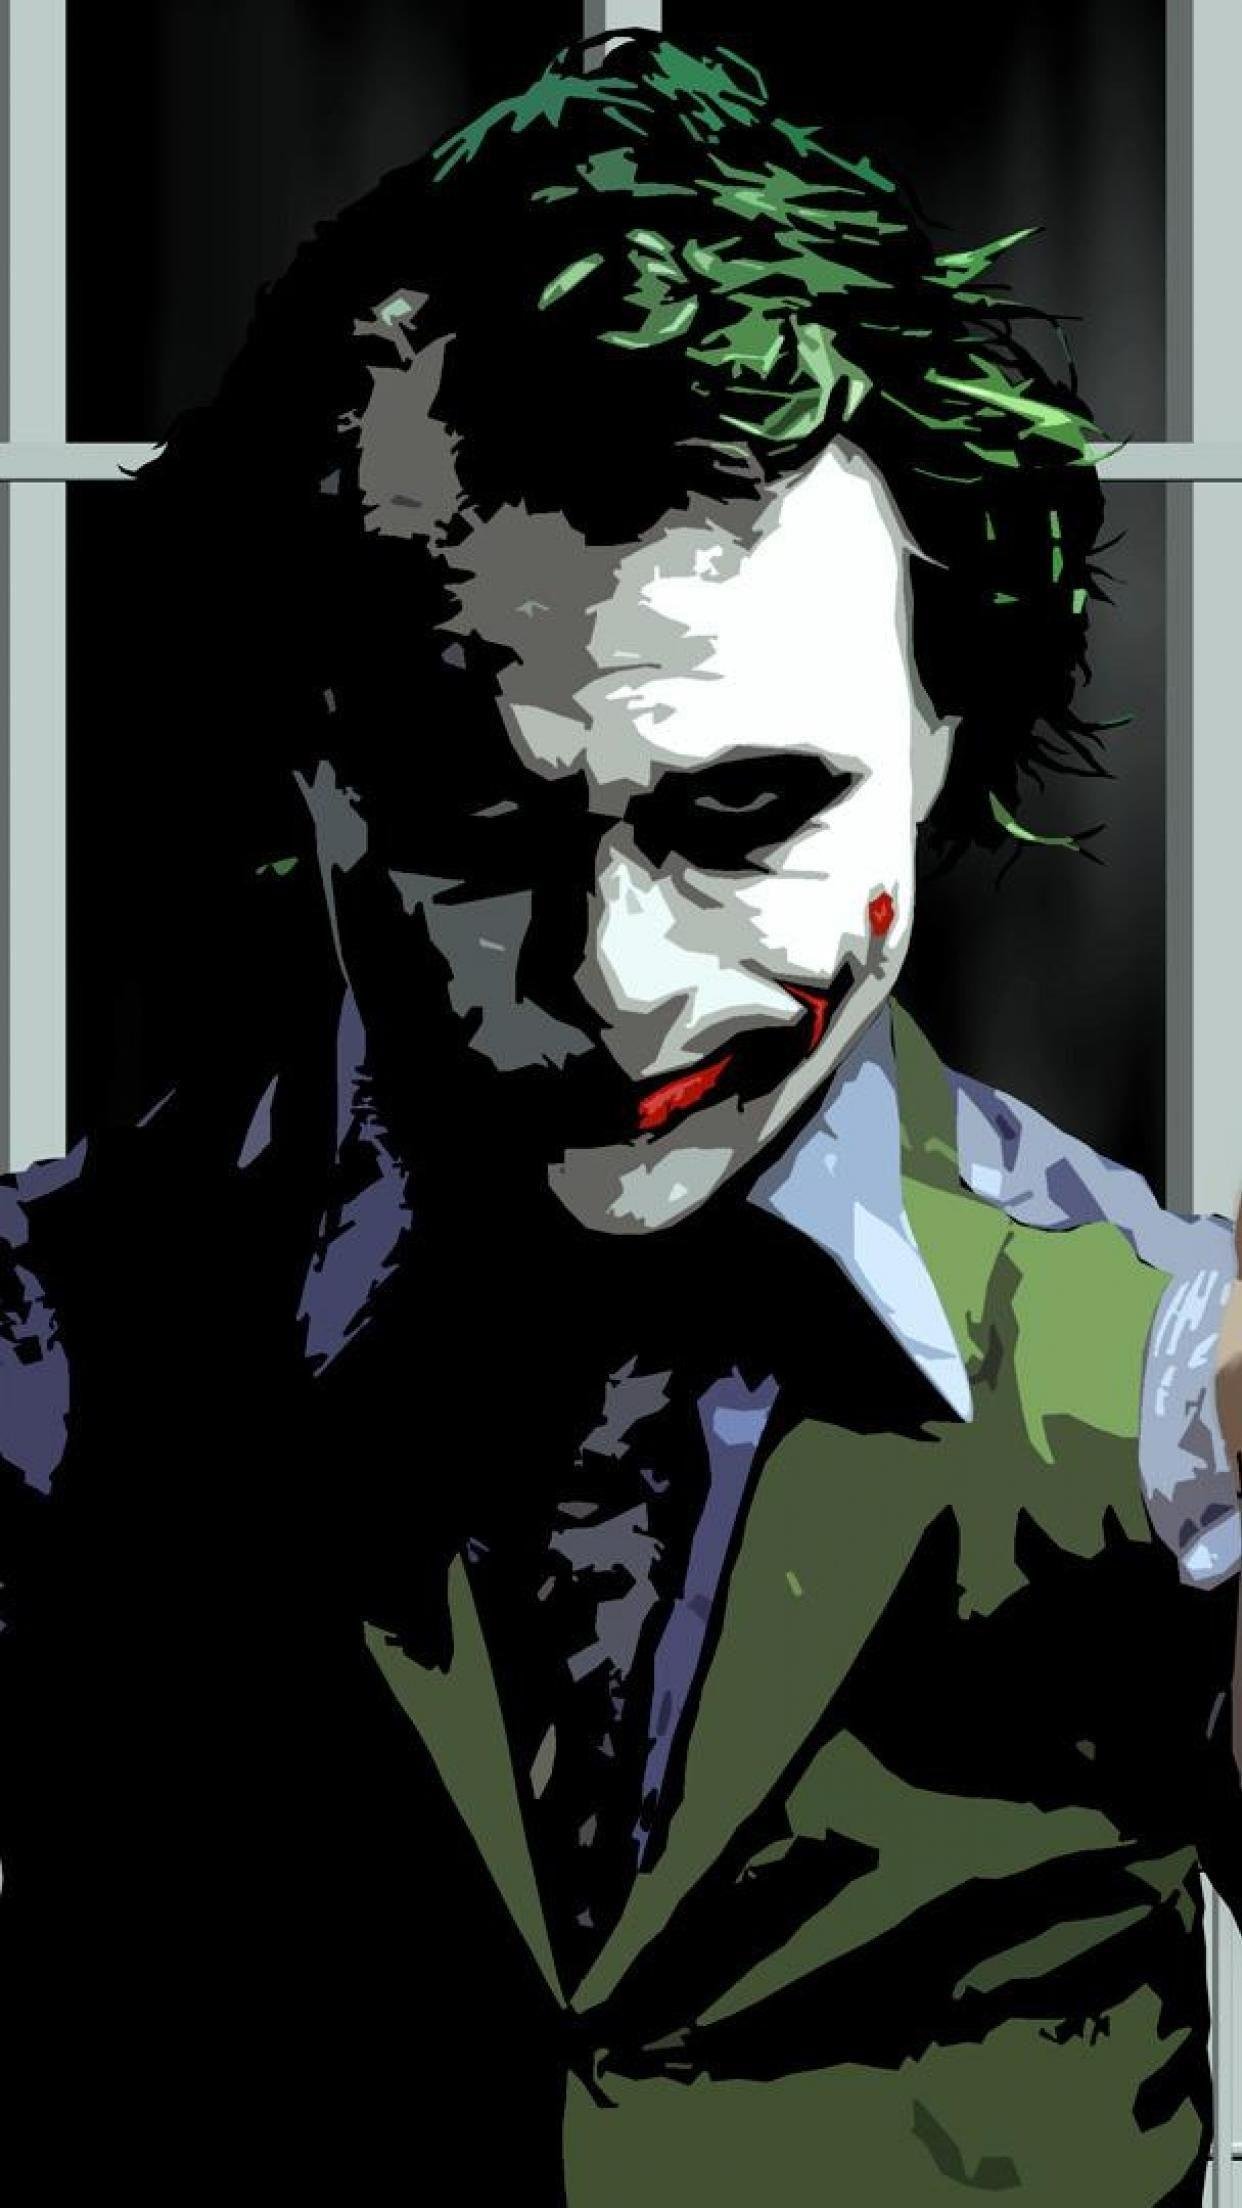 Joker, why so serious? by BuiltToFail.